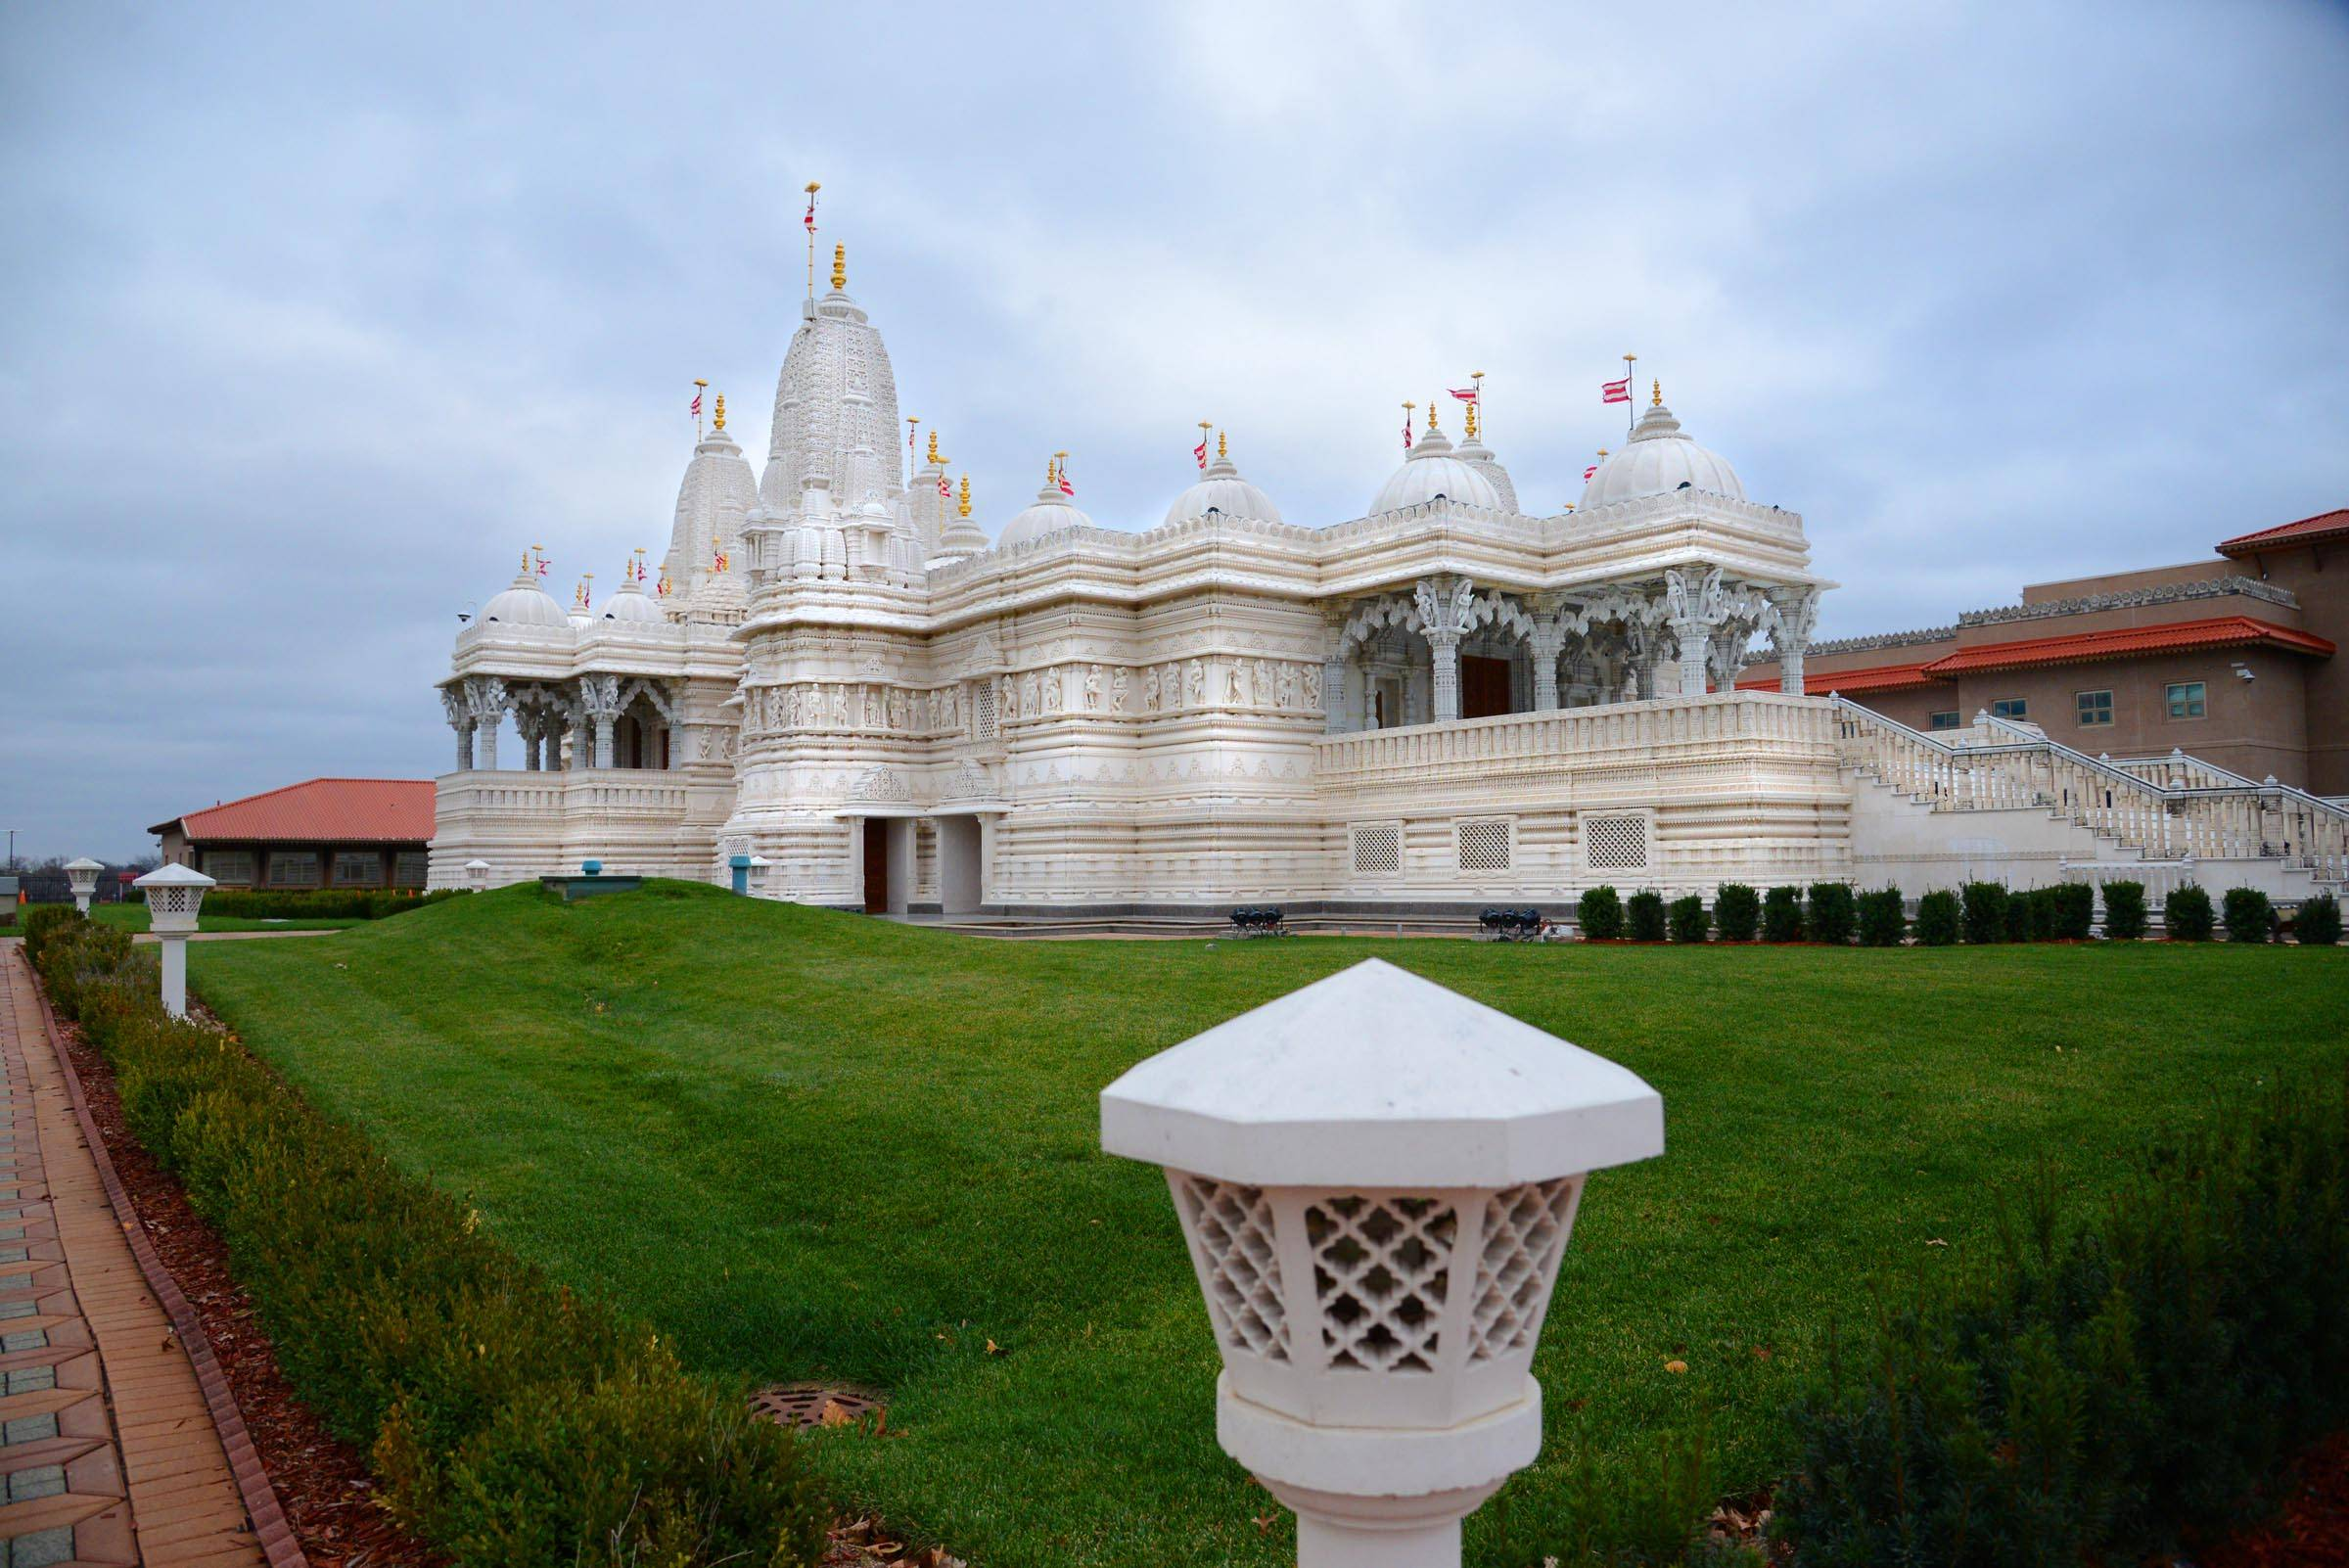 The BAPS Shri Swaminarayan Mandir in Bartlett off Route 59 was constructed with 7,000 tons of Italian Carrara marble and Turkish limestone, hand-carved in India and assembled in Bartlett. The temple has been given permission to open a satellite location for religious gatherings and services in Lake in the Hills.